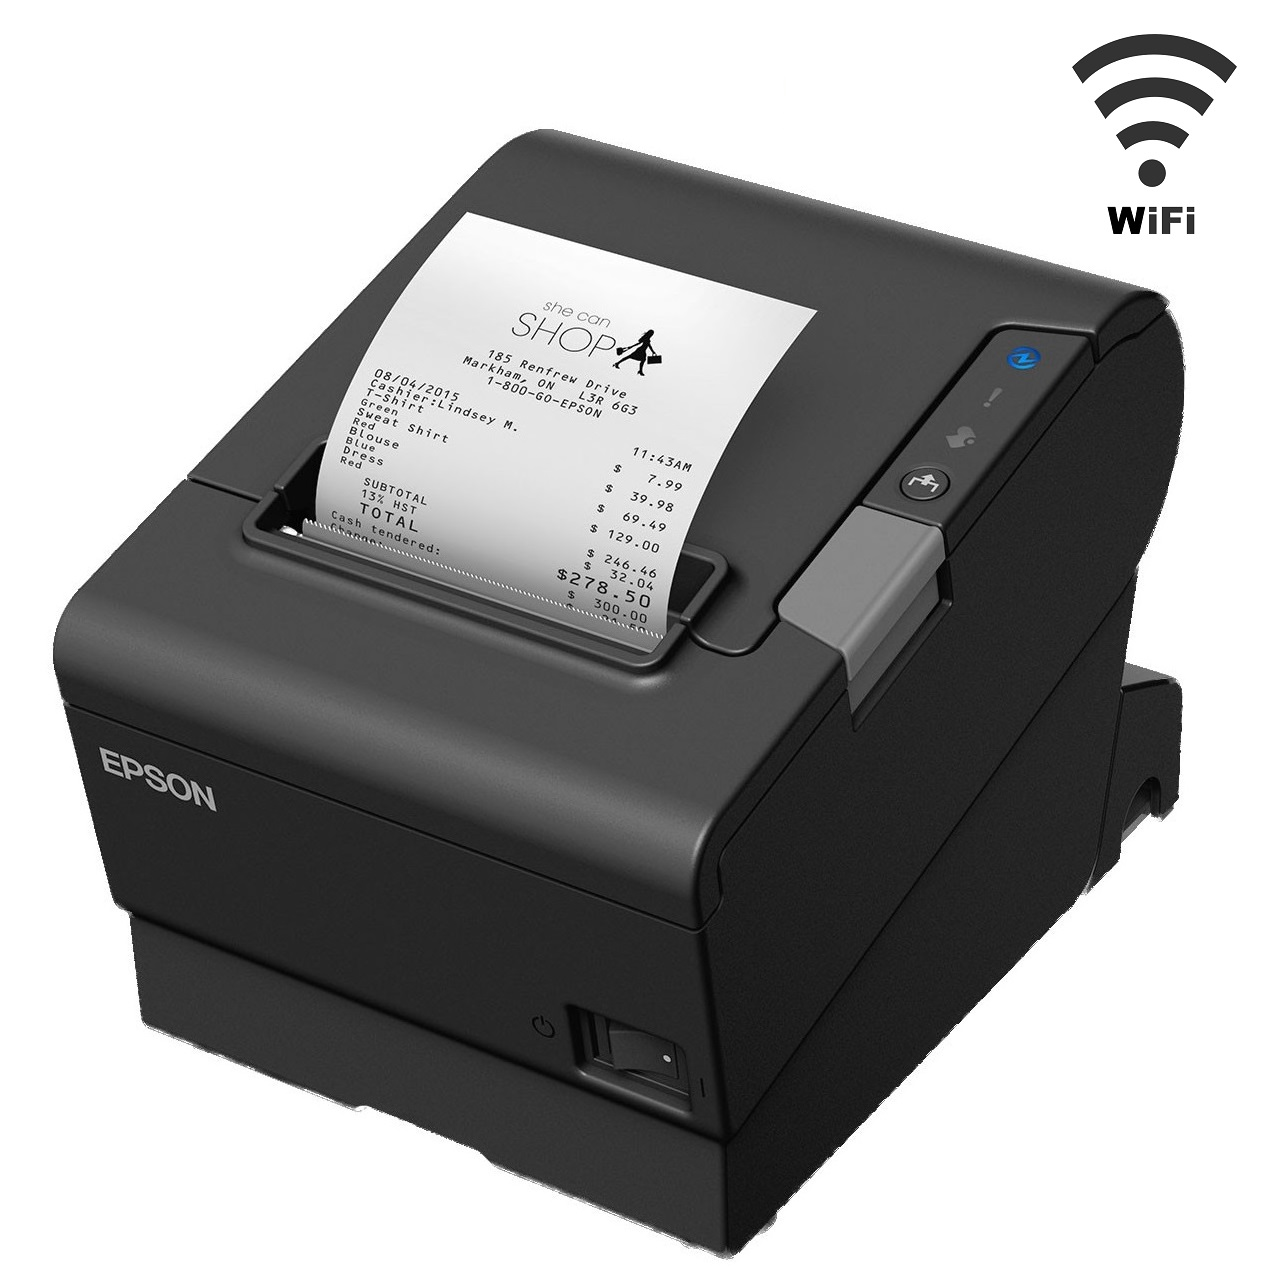 View Epson TM-T88VI Wireless Thermal Receipt Printer